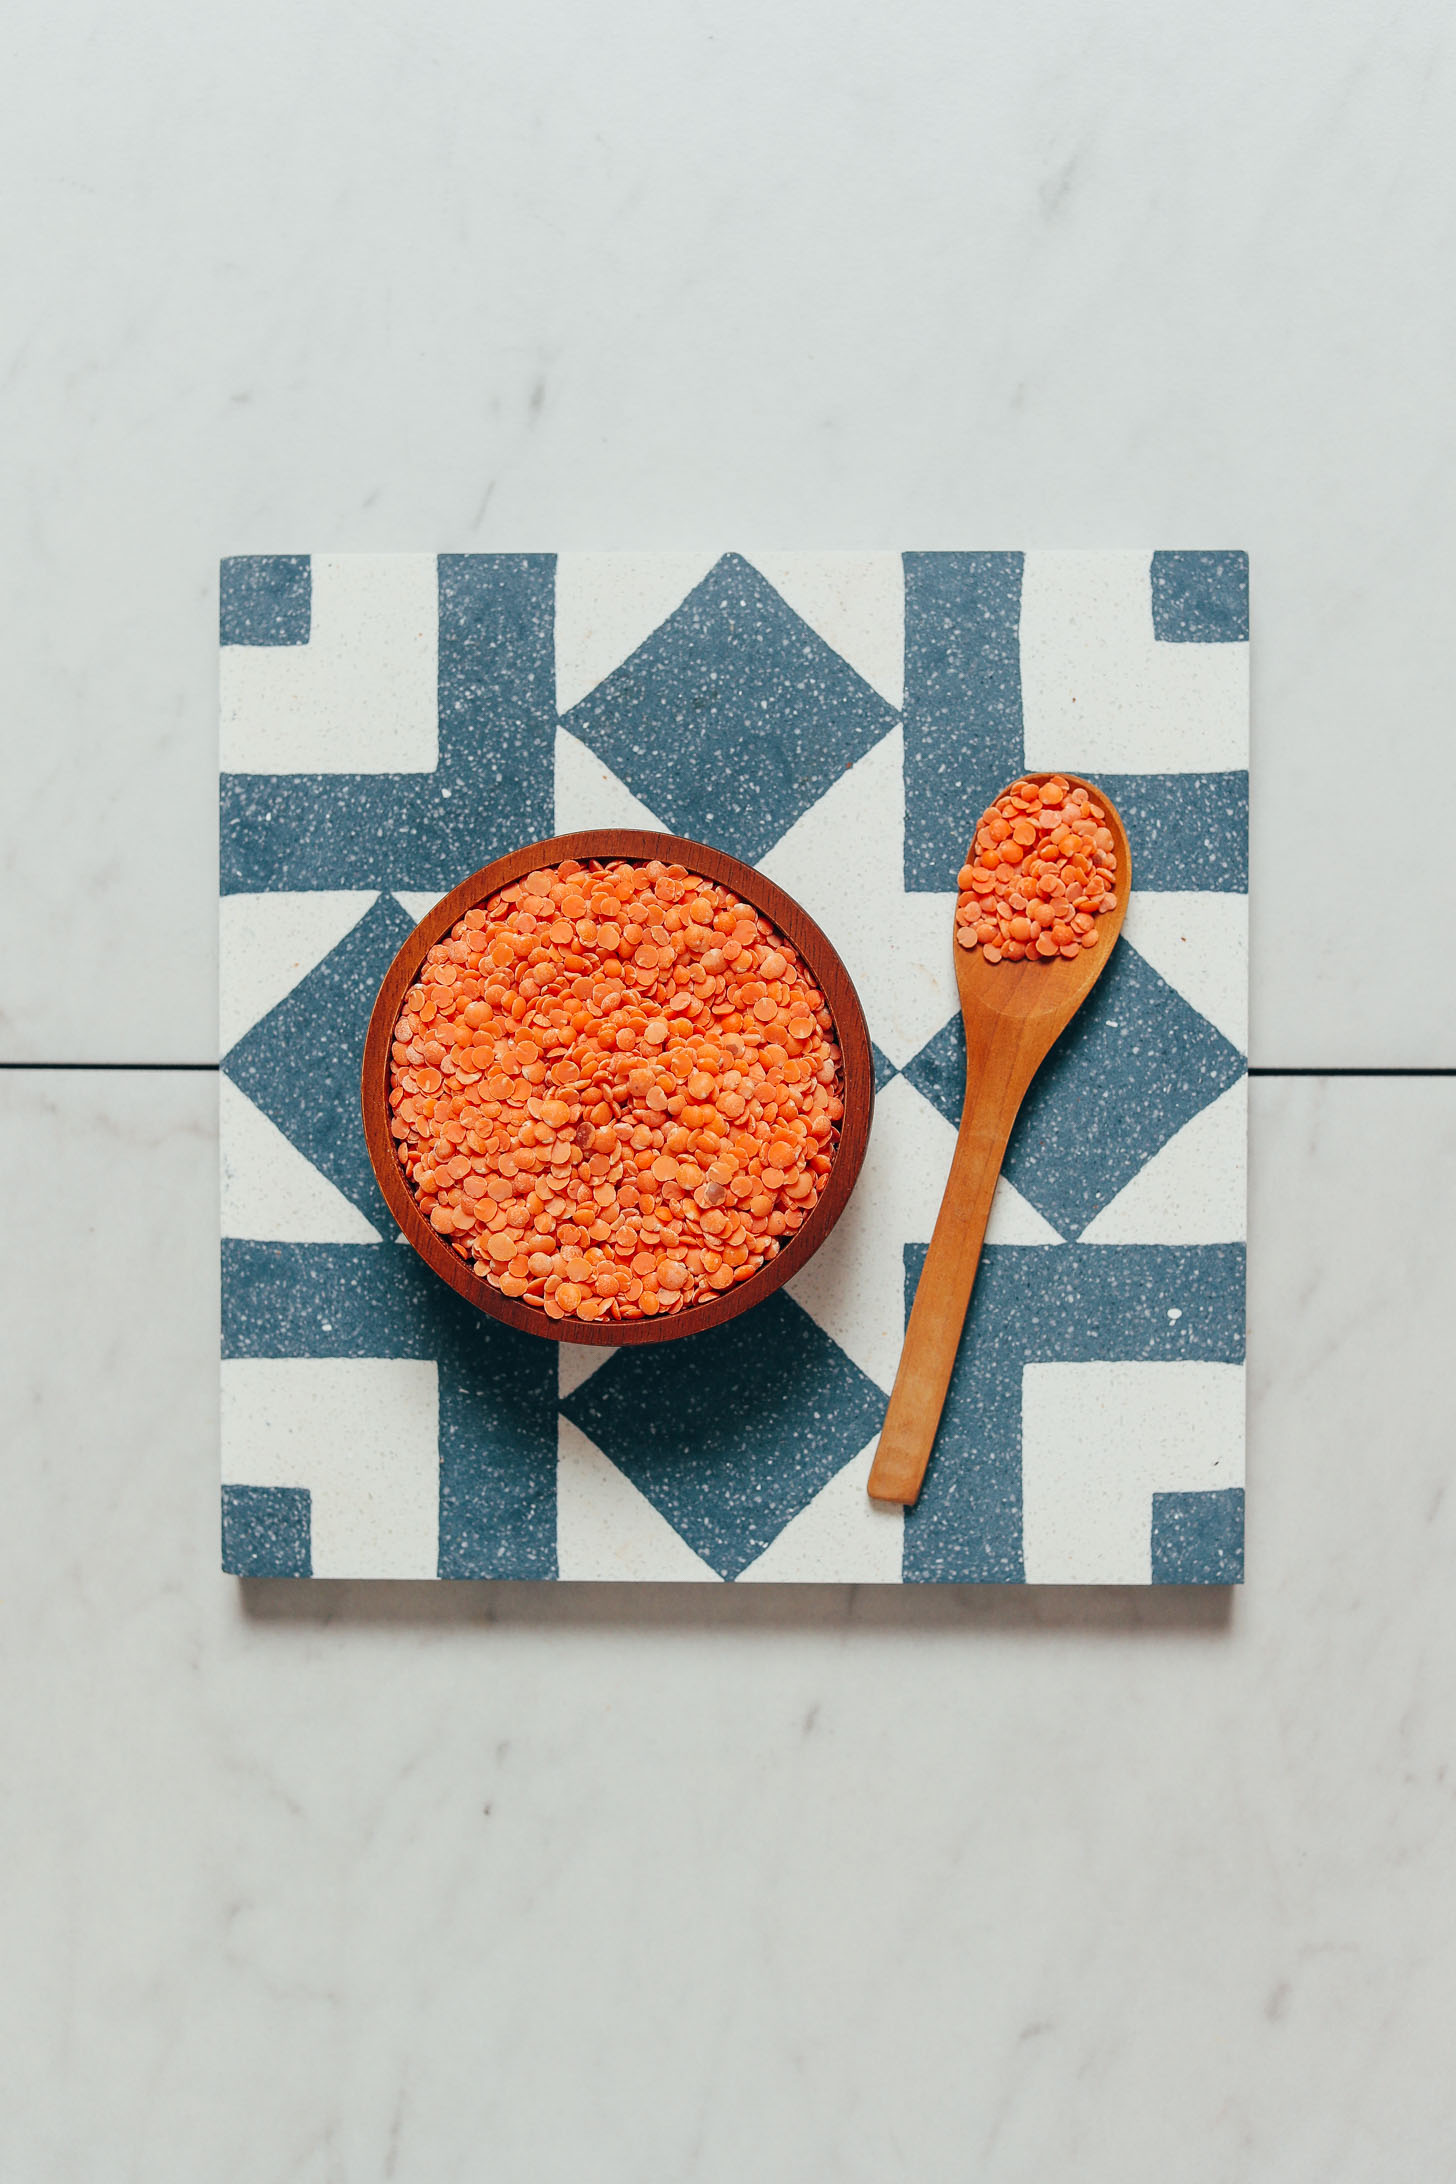 Bowl and spoon of red lentils